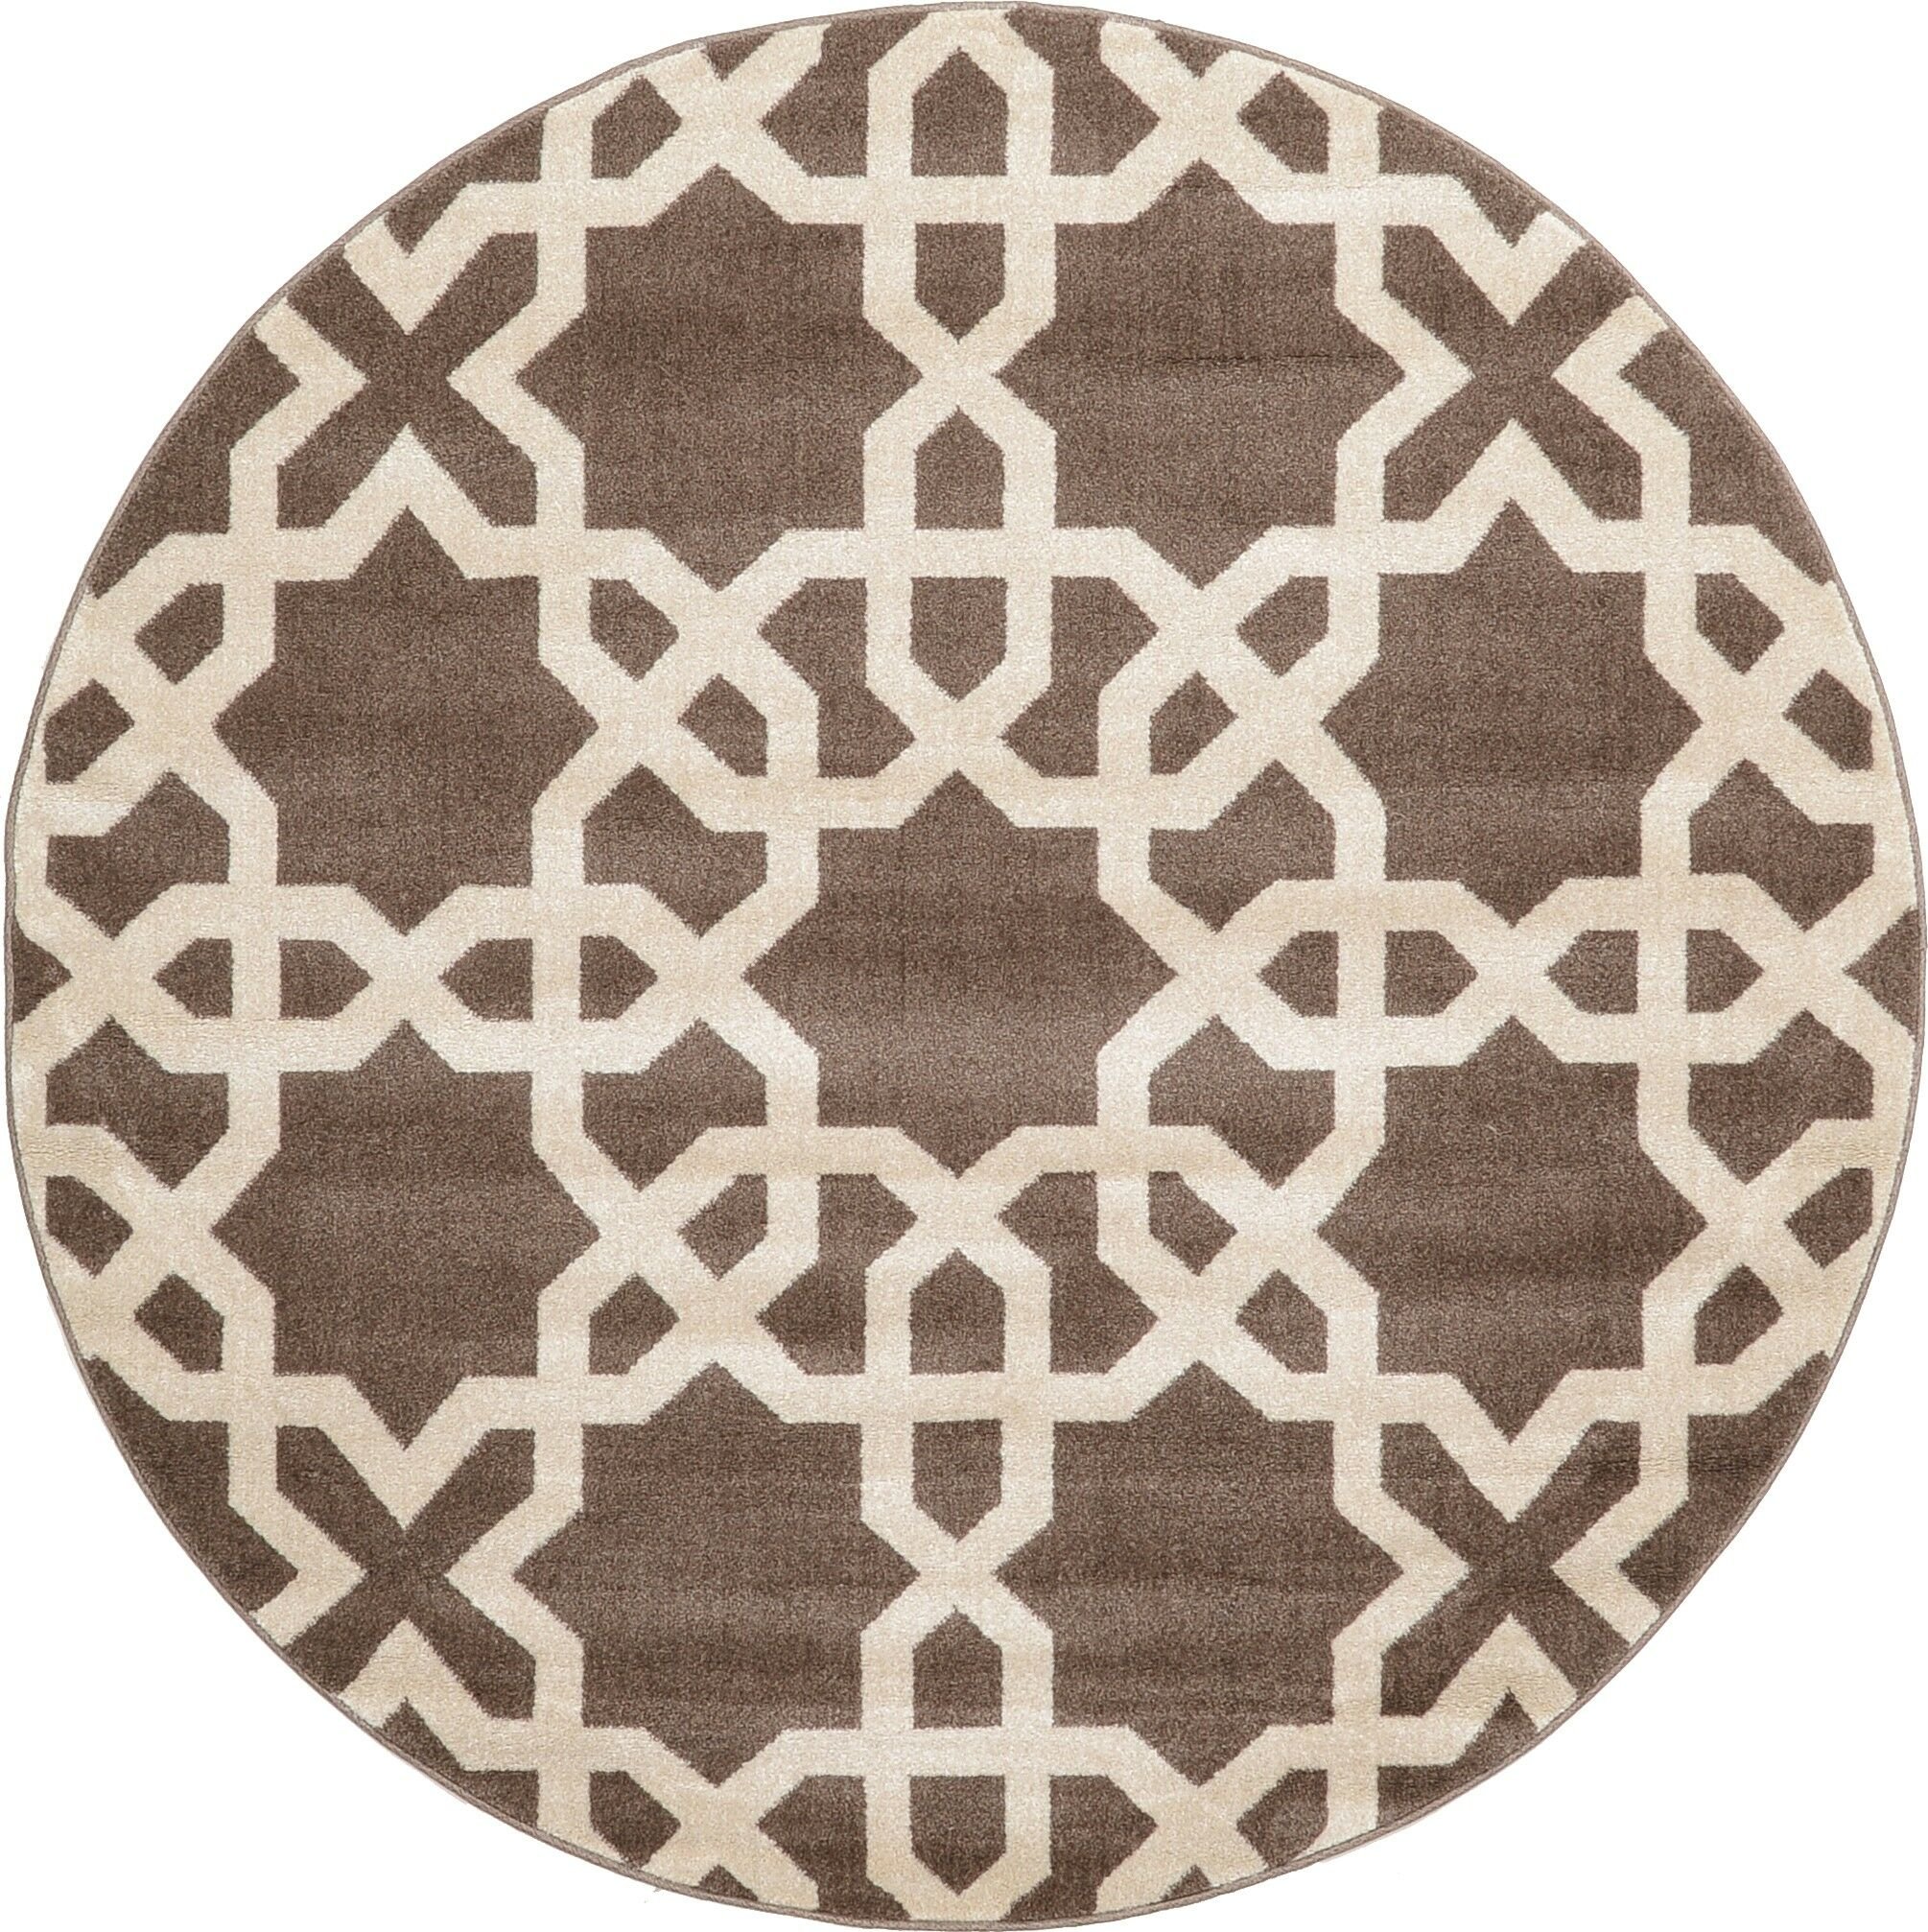 Moore Light Brown Area Rug Rug Size: Round 6'